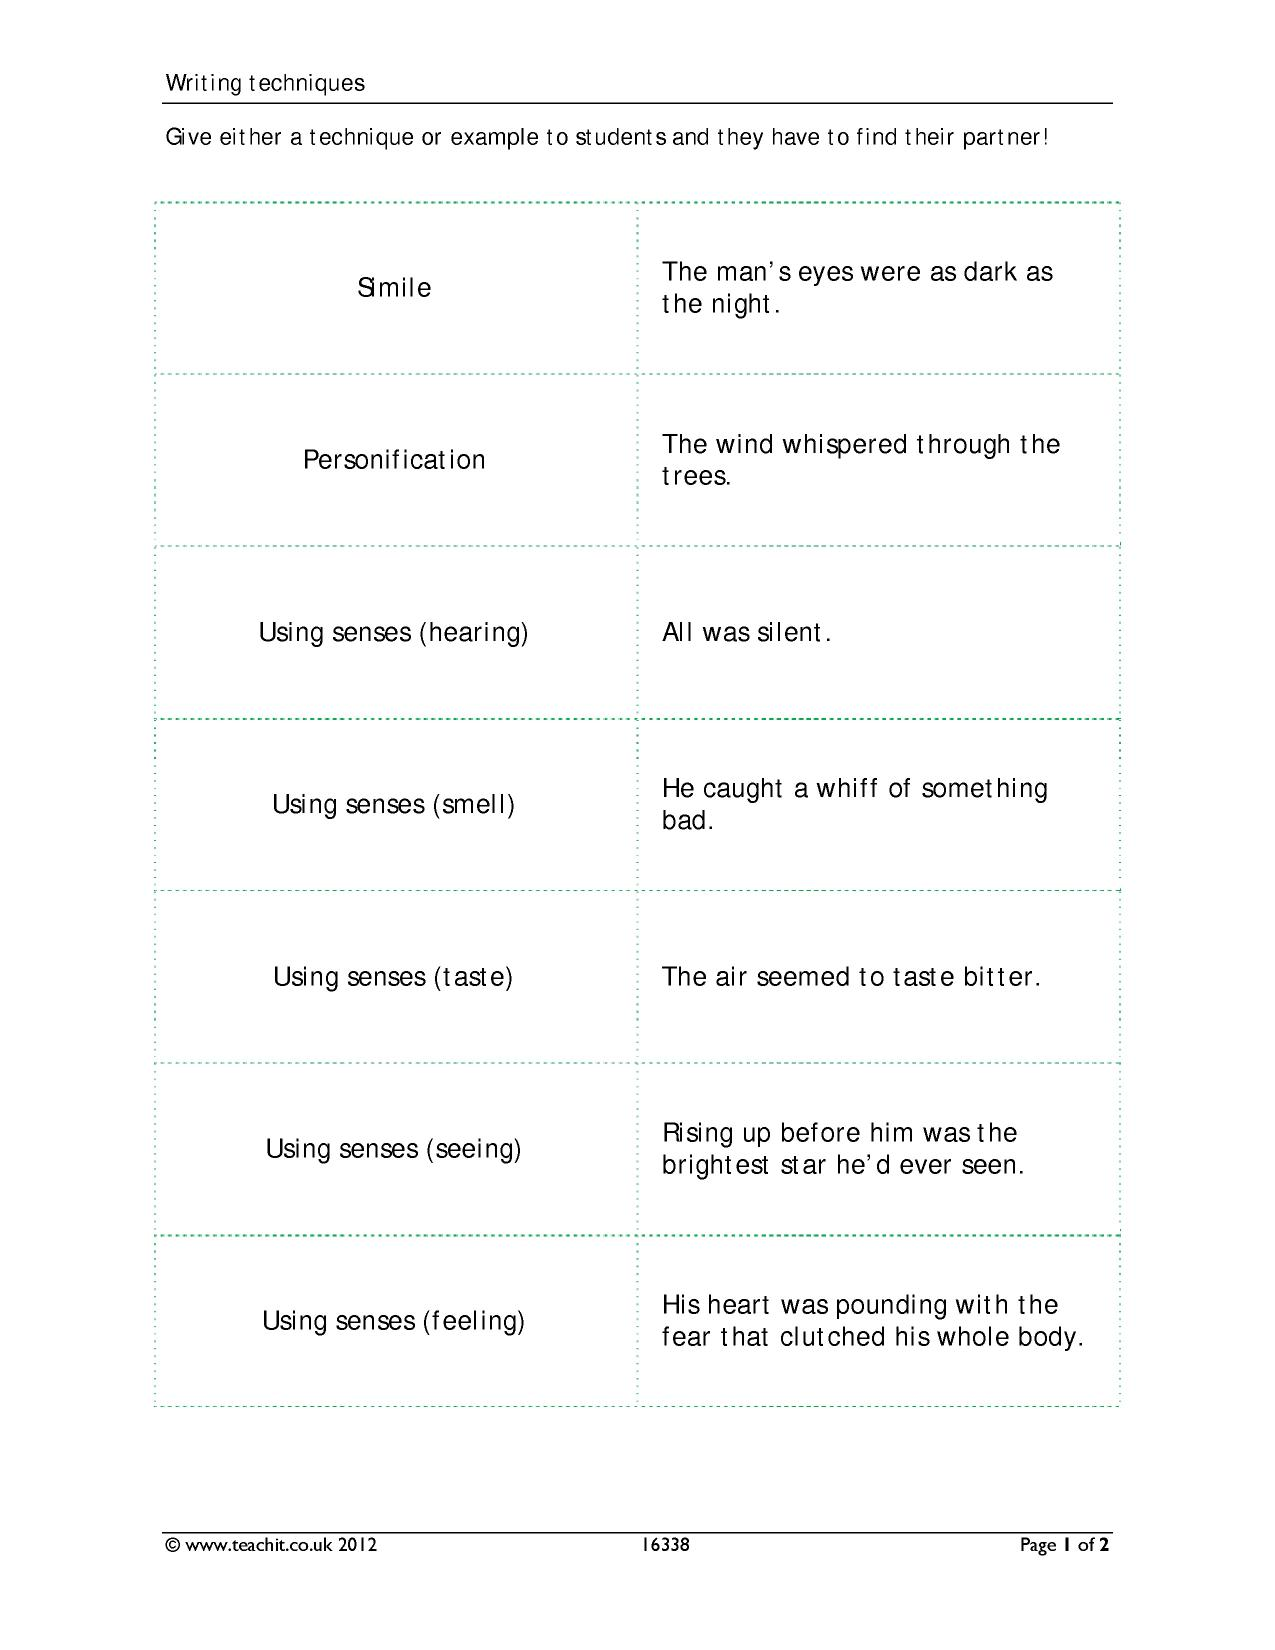 language techniques for creative writing Creative writing tips show how to improve writing skills through effective use of figurative language, action verbs and much more with examples from top authors.